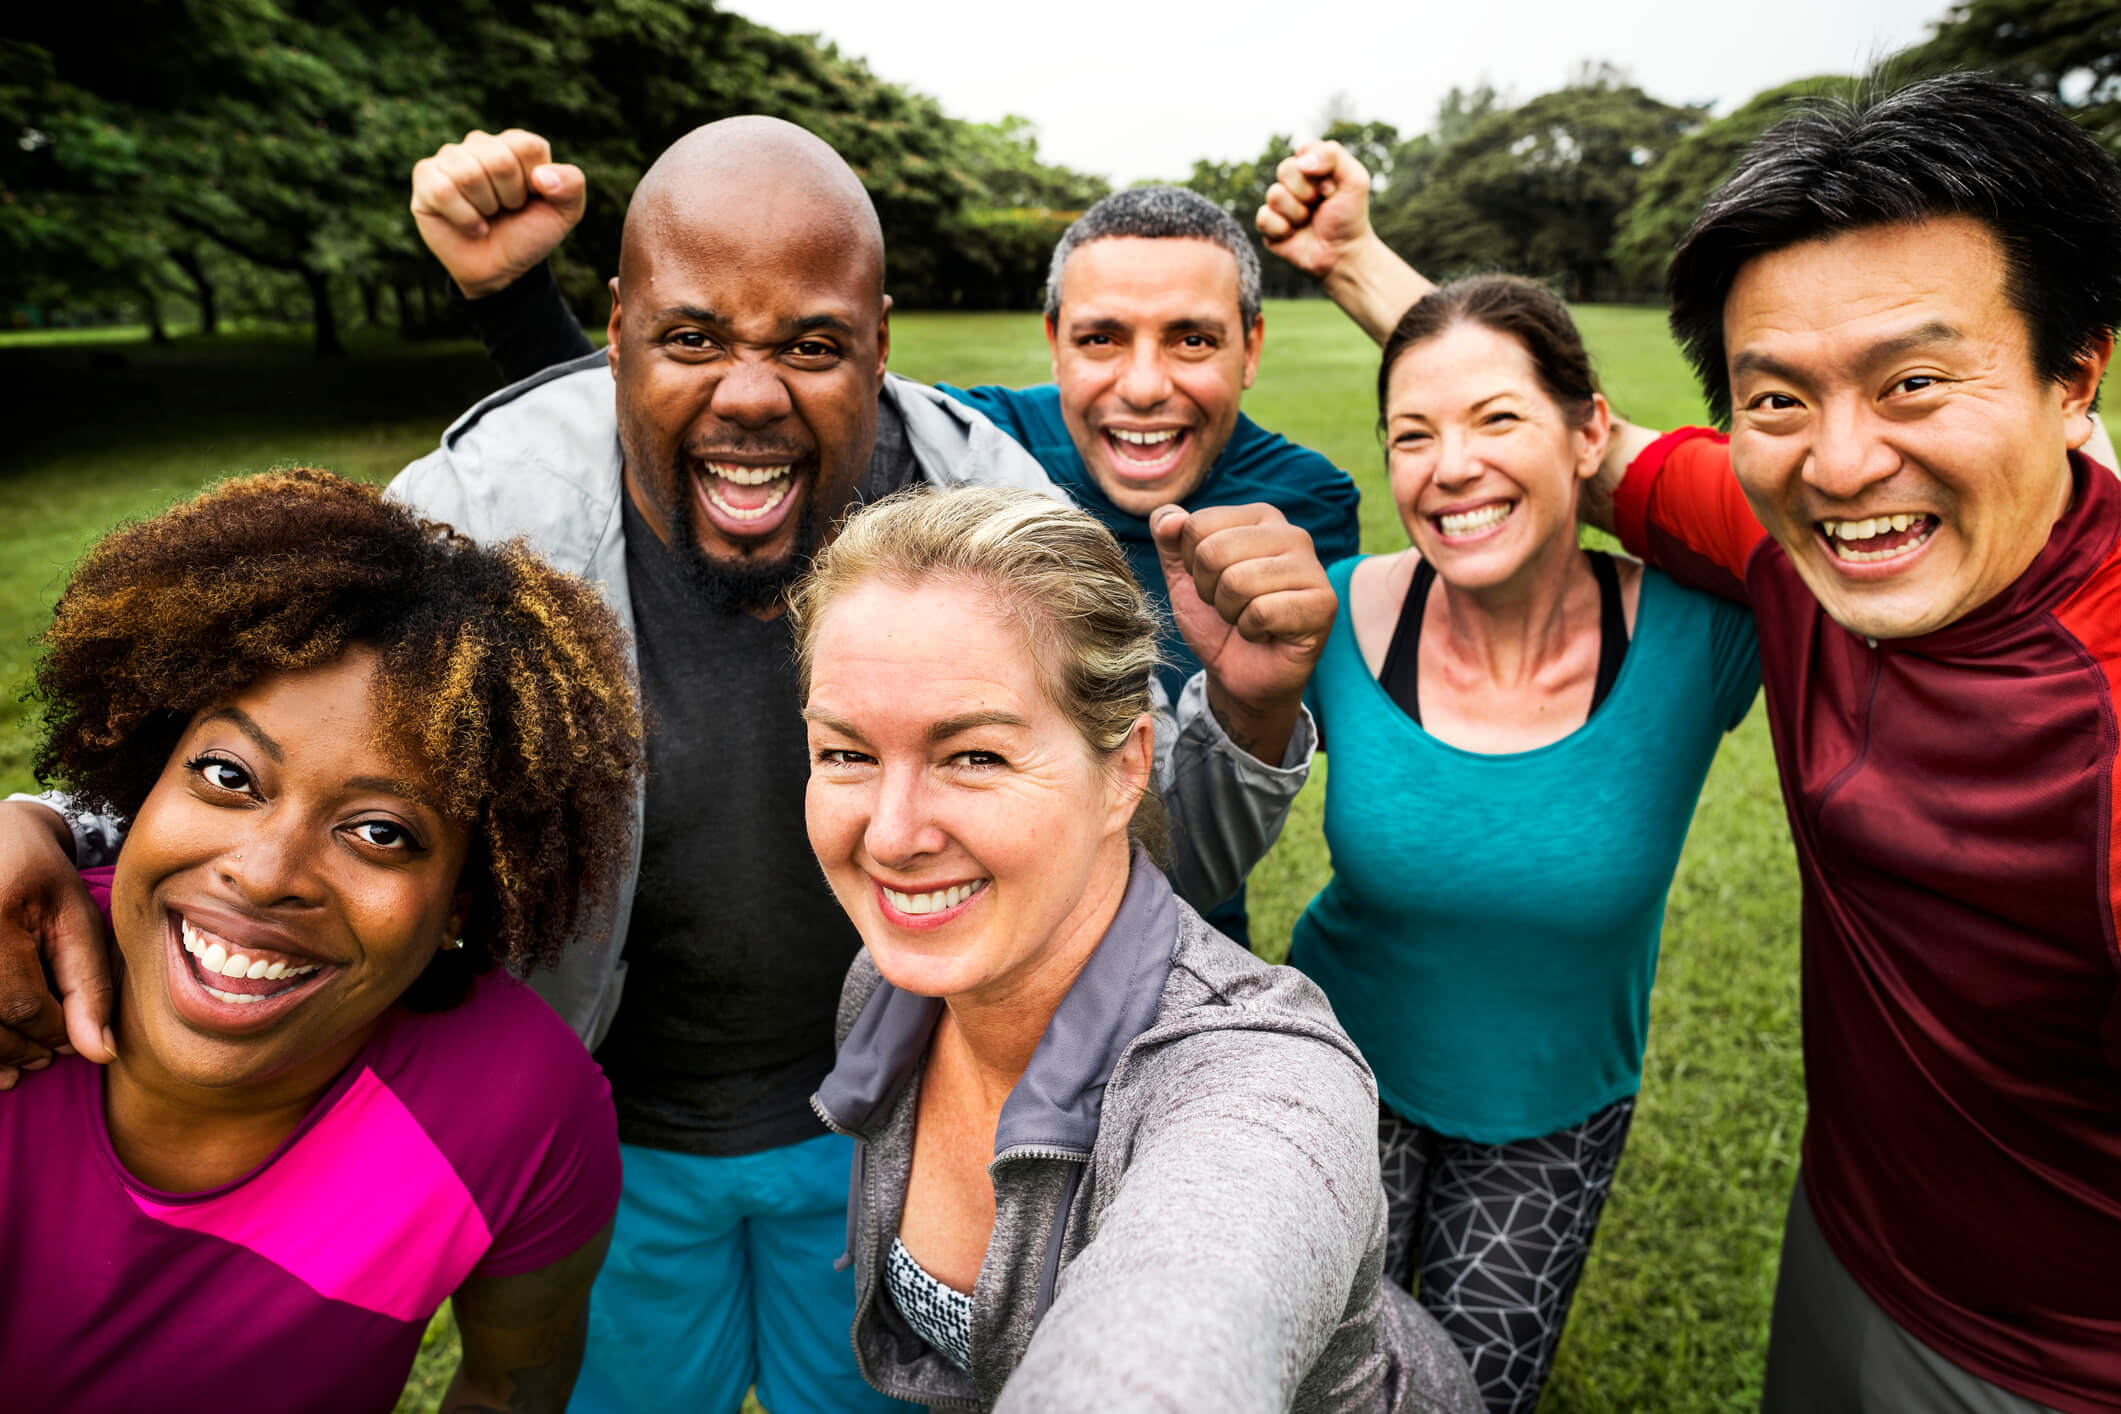 A group of healthy, active people